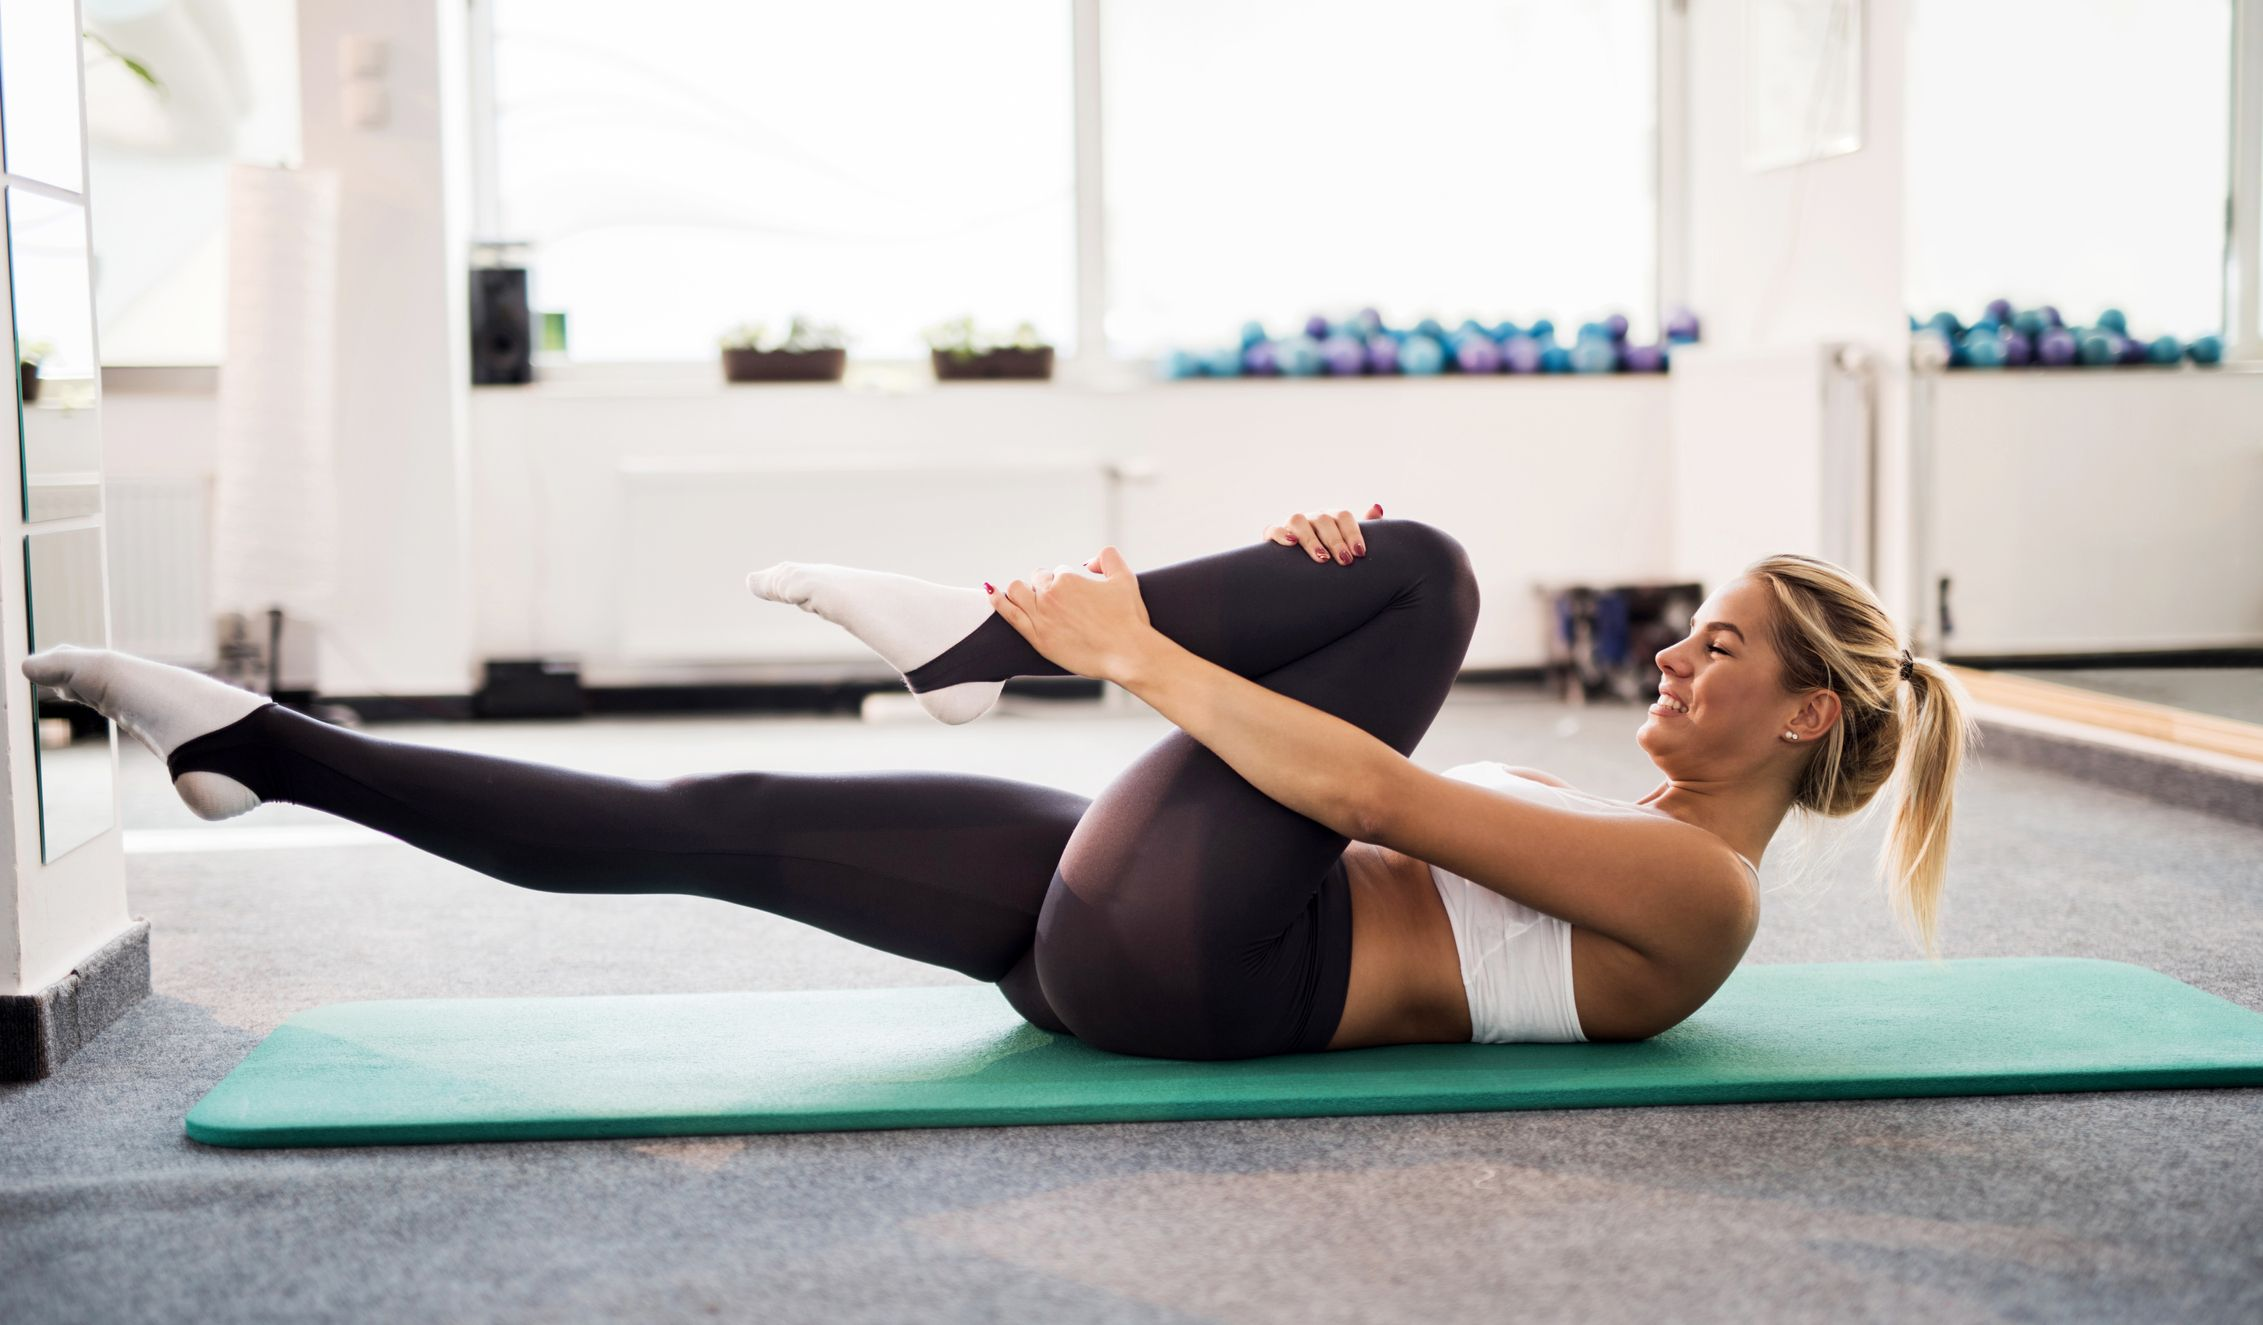 6 pilates moves to strengthen your core from your living room